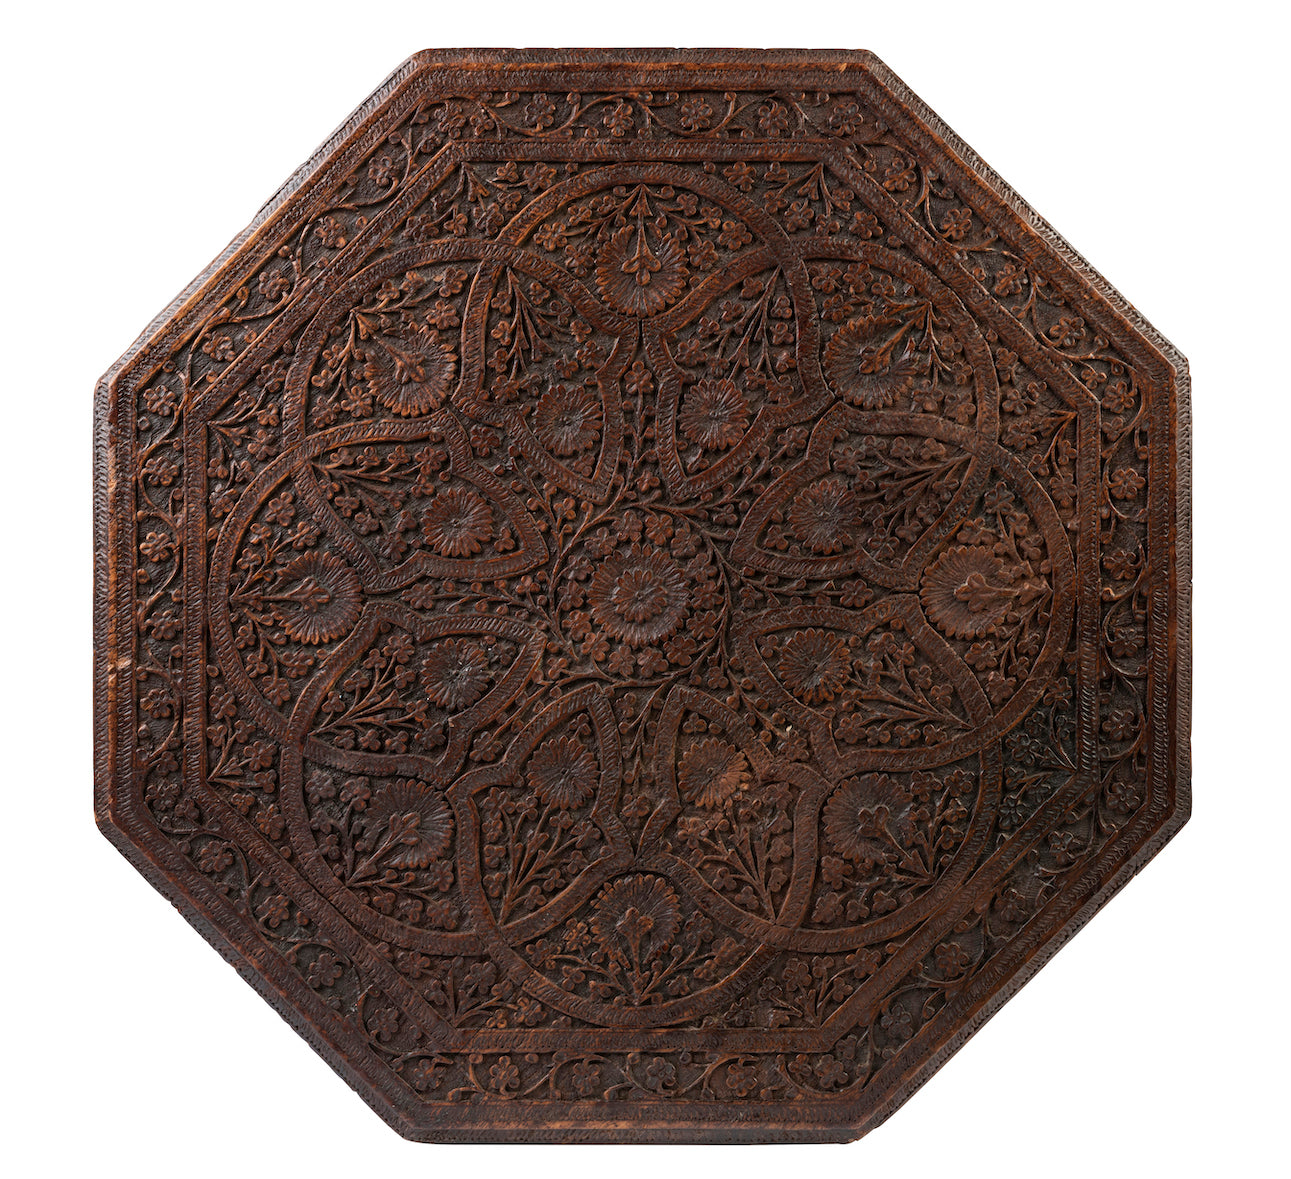 SOLD A fine Kashmiri carved octagonal occasional table with cast iron base, Anglo-Indian 19th Century